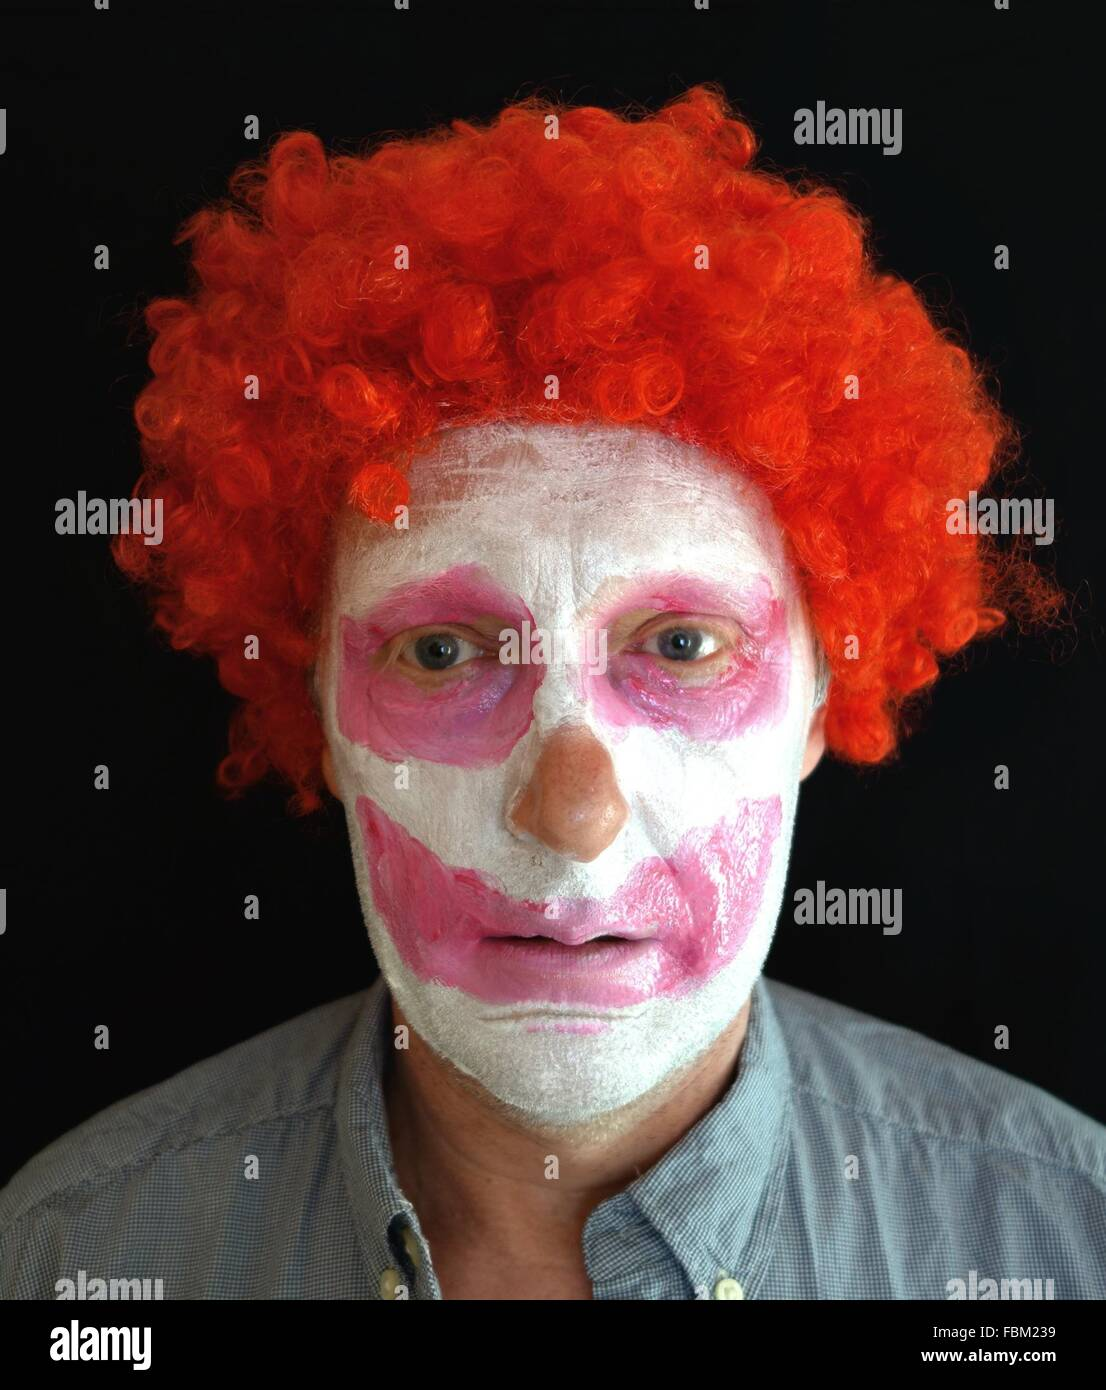 Close-Up Portrait Of A Young Man With Face Paint And Red Wig - Stock Image